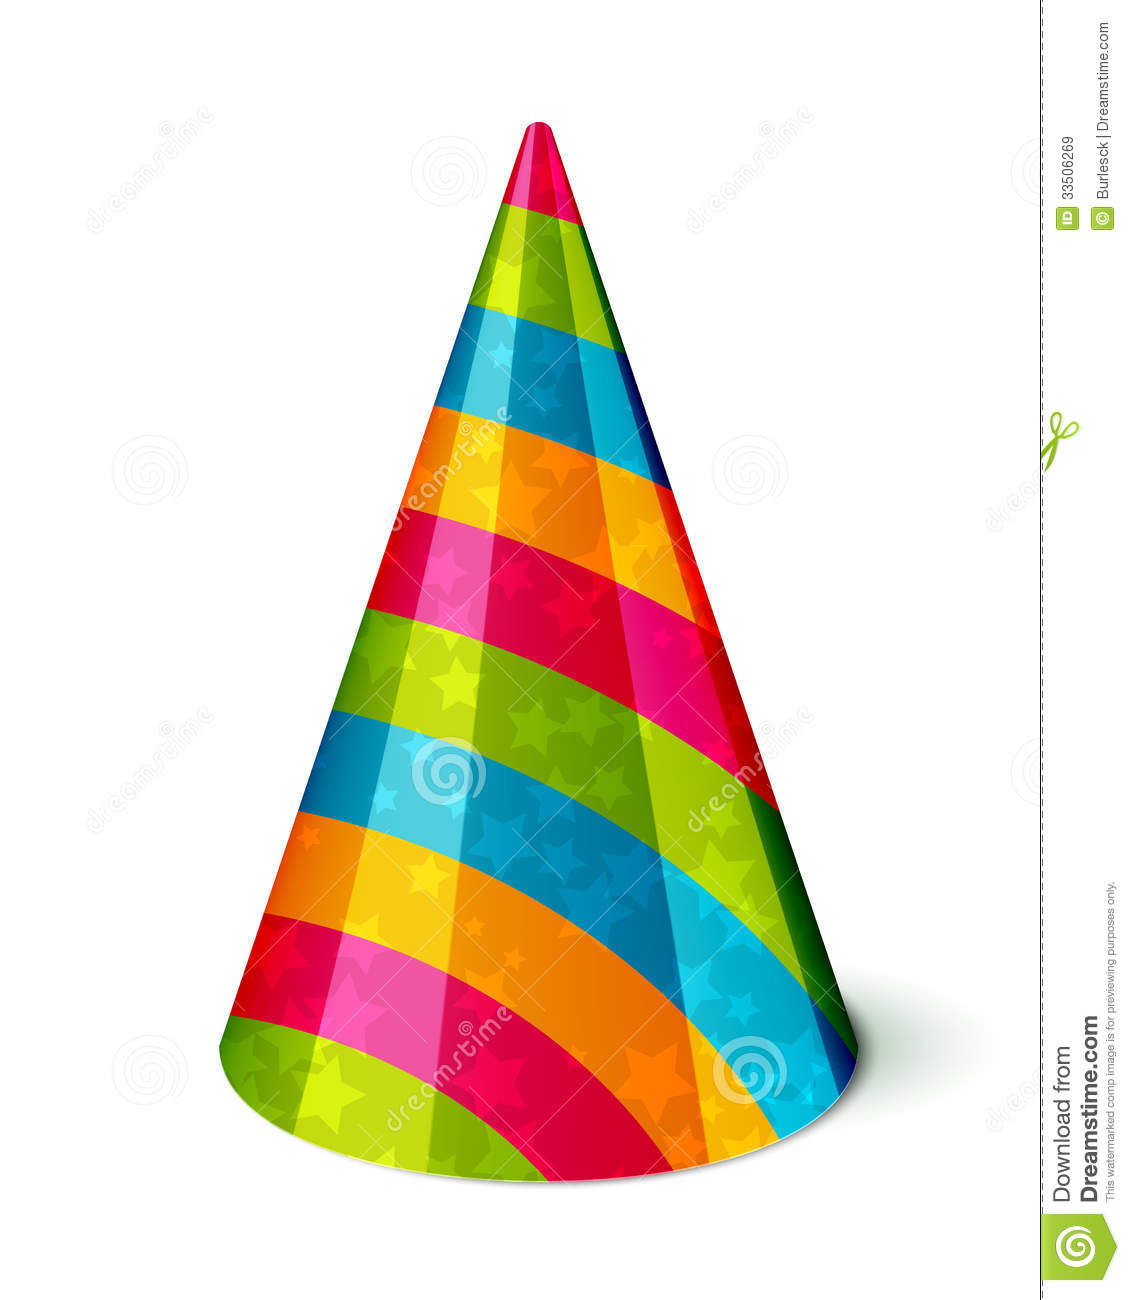 618b0c8f Party hat stock vector. Illustration of costume, party - 33506269